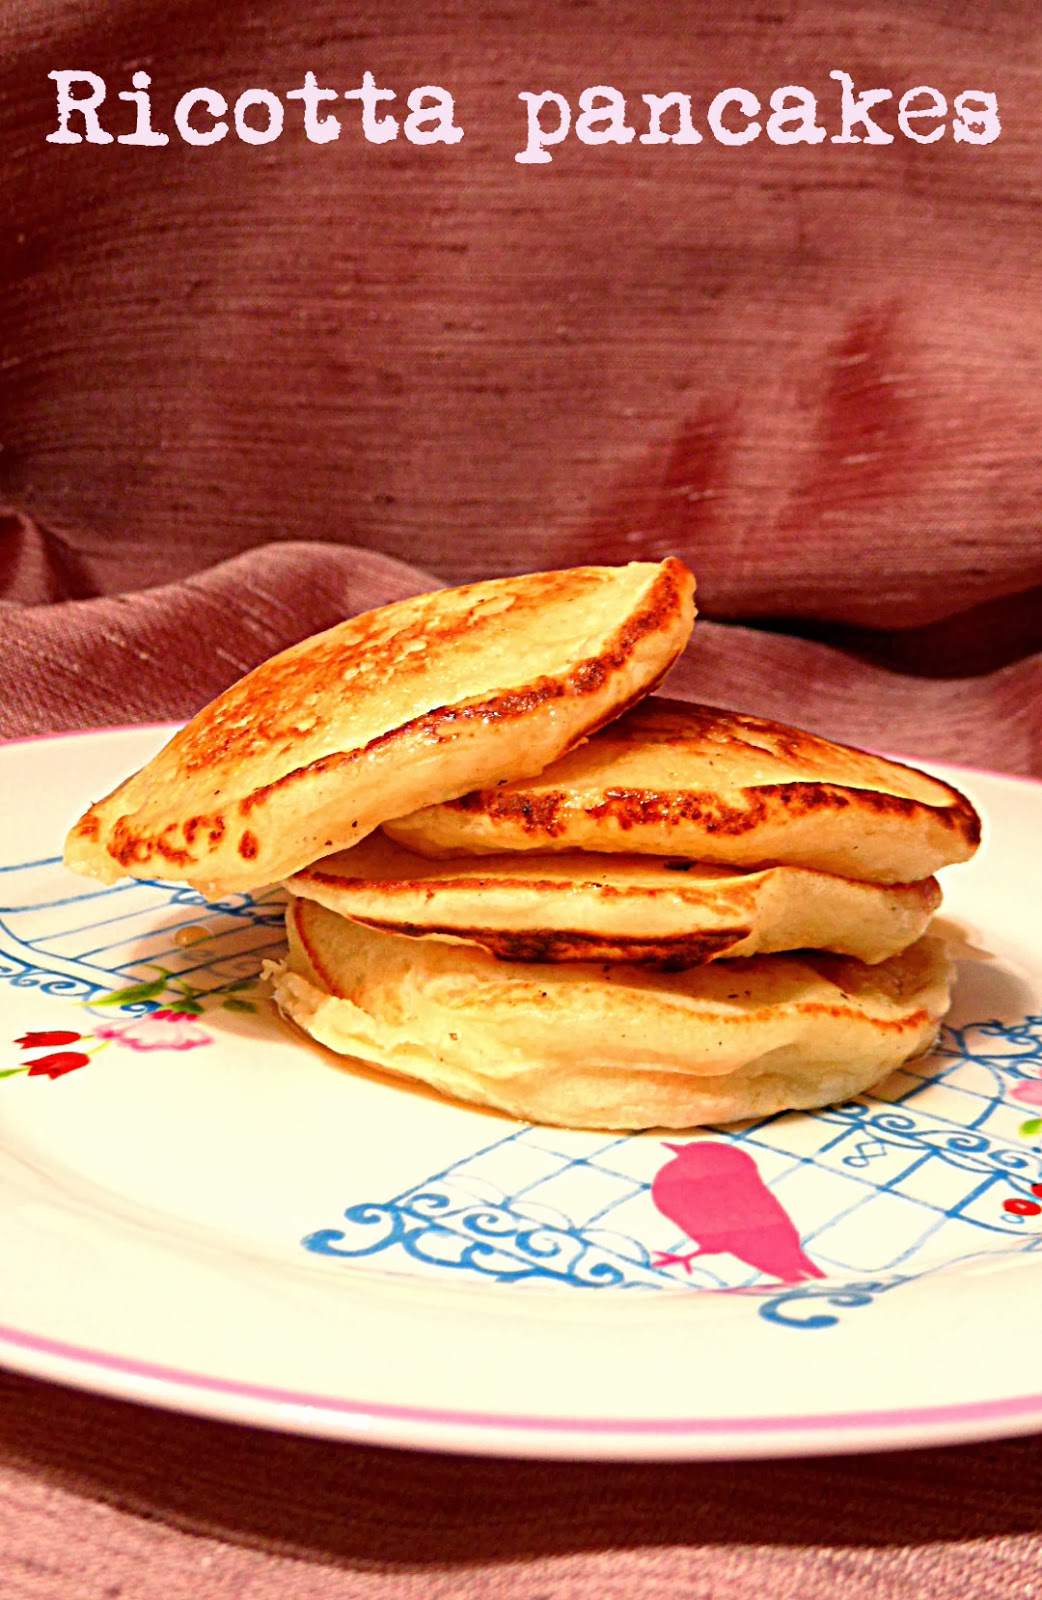 Italian recipe, Pancake day recipe